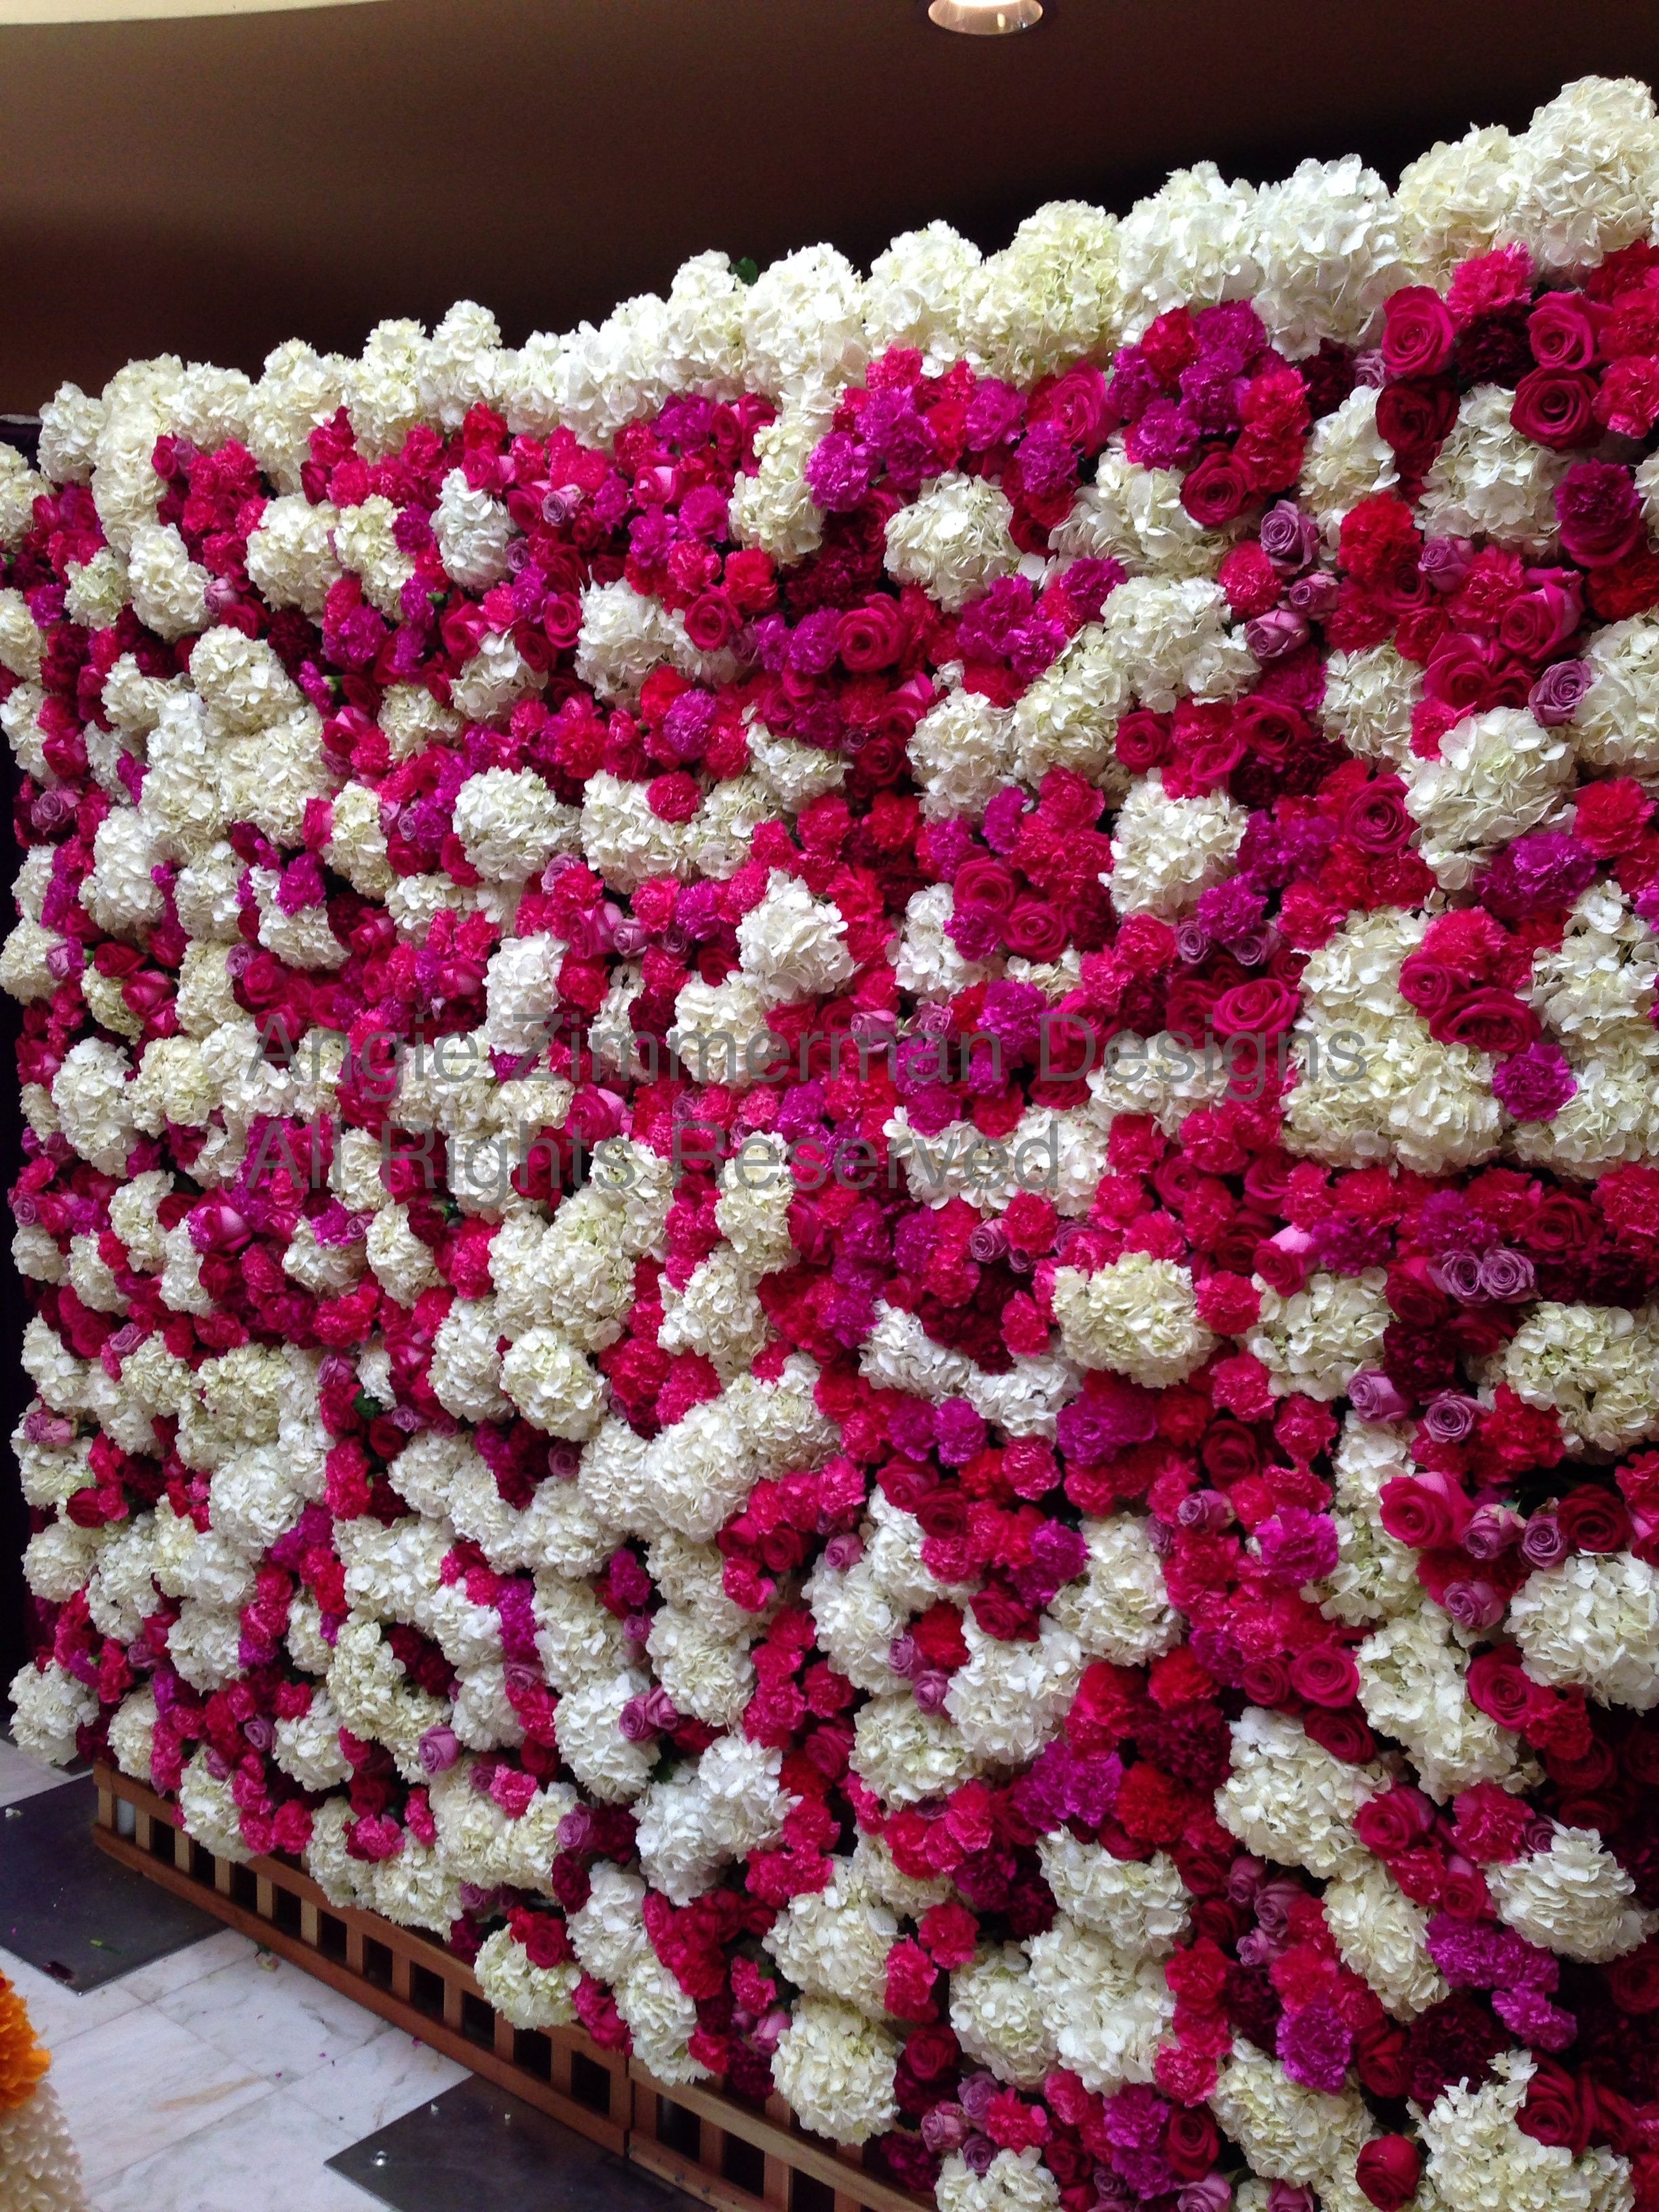 A Fresh Flower Wall Made Out Of Hydrangea Roses And Carnations By Angie Zimmerman Designs Flowerwall Creativeflor Floral Design Flower Wall Floral Wall Art